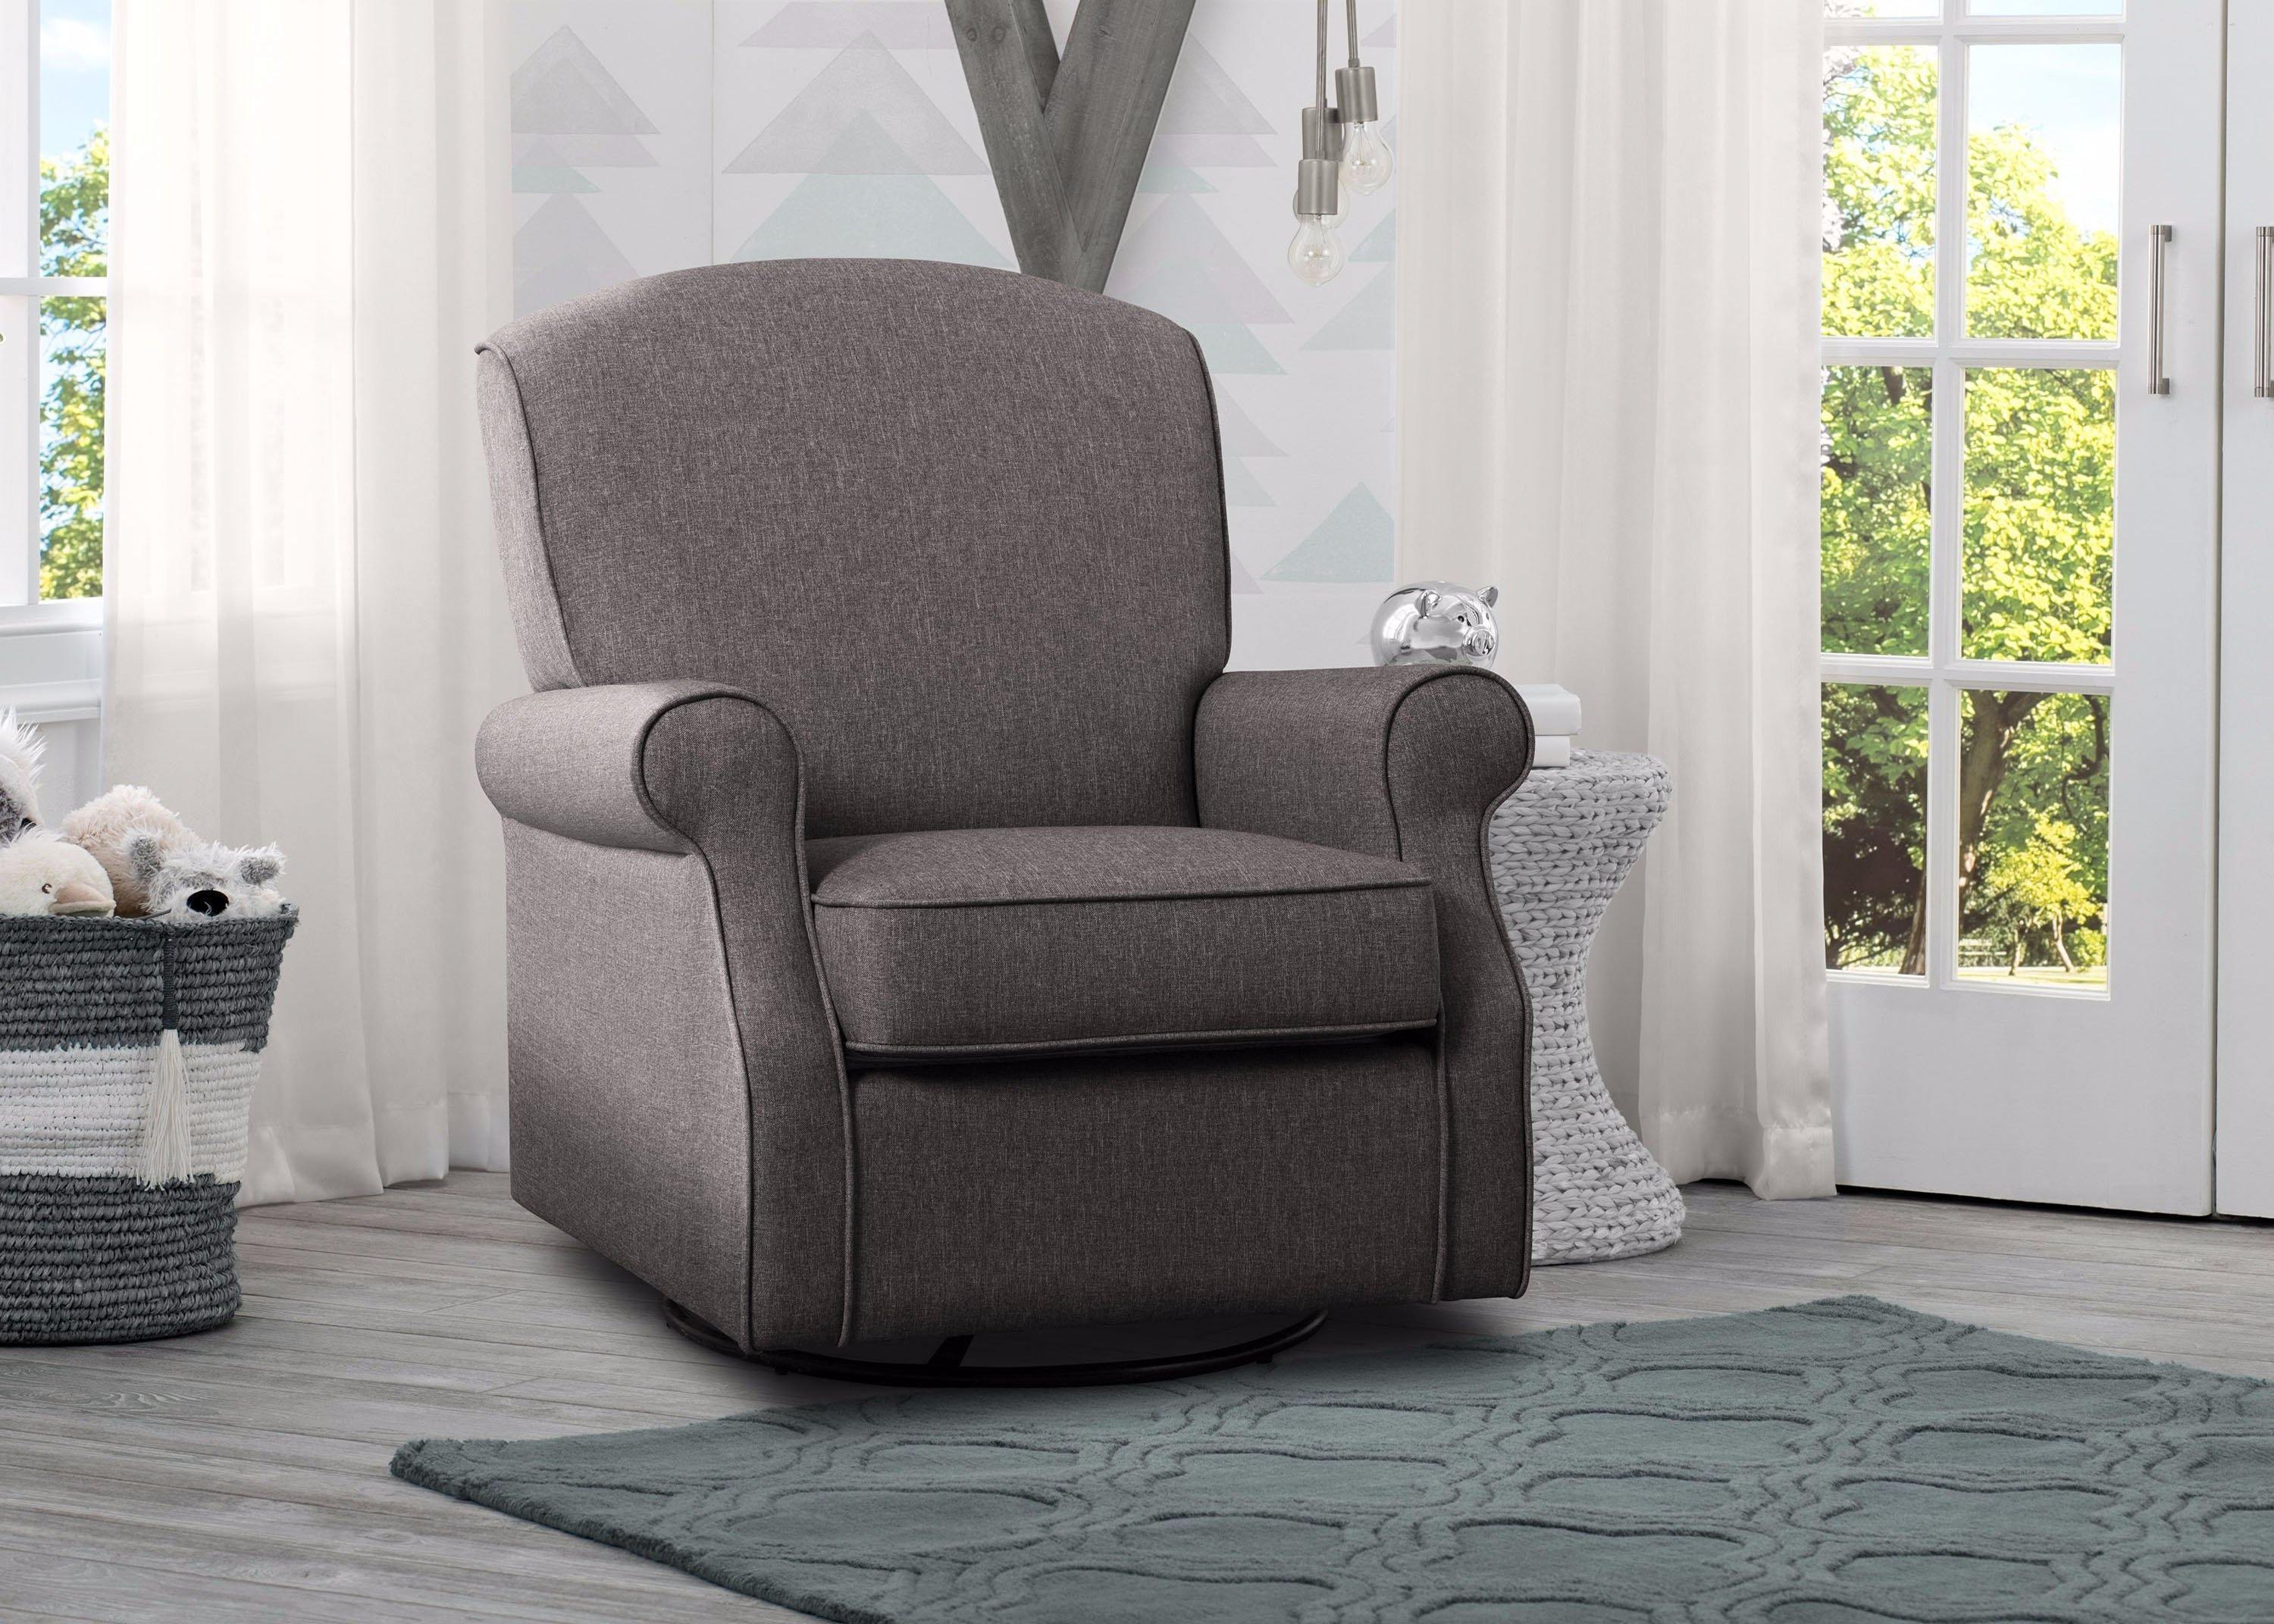 canada grande bugz nestled glider chair furniture fogo gliders collections snuggle nursery white by